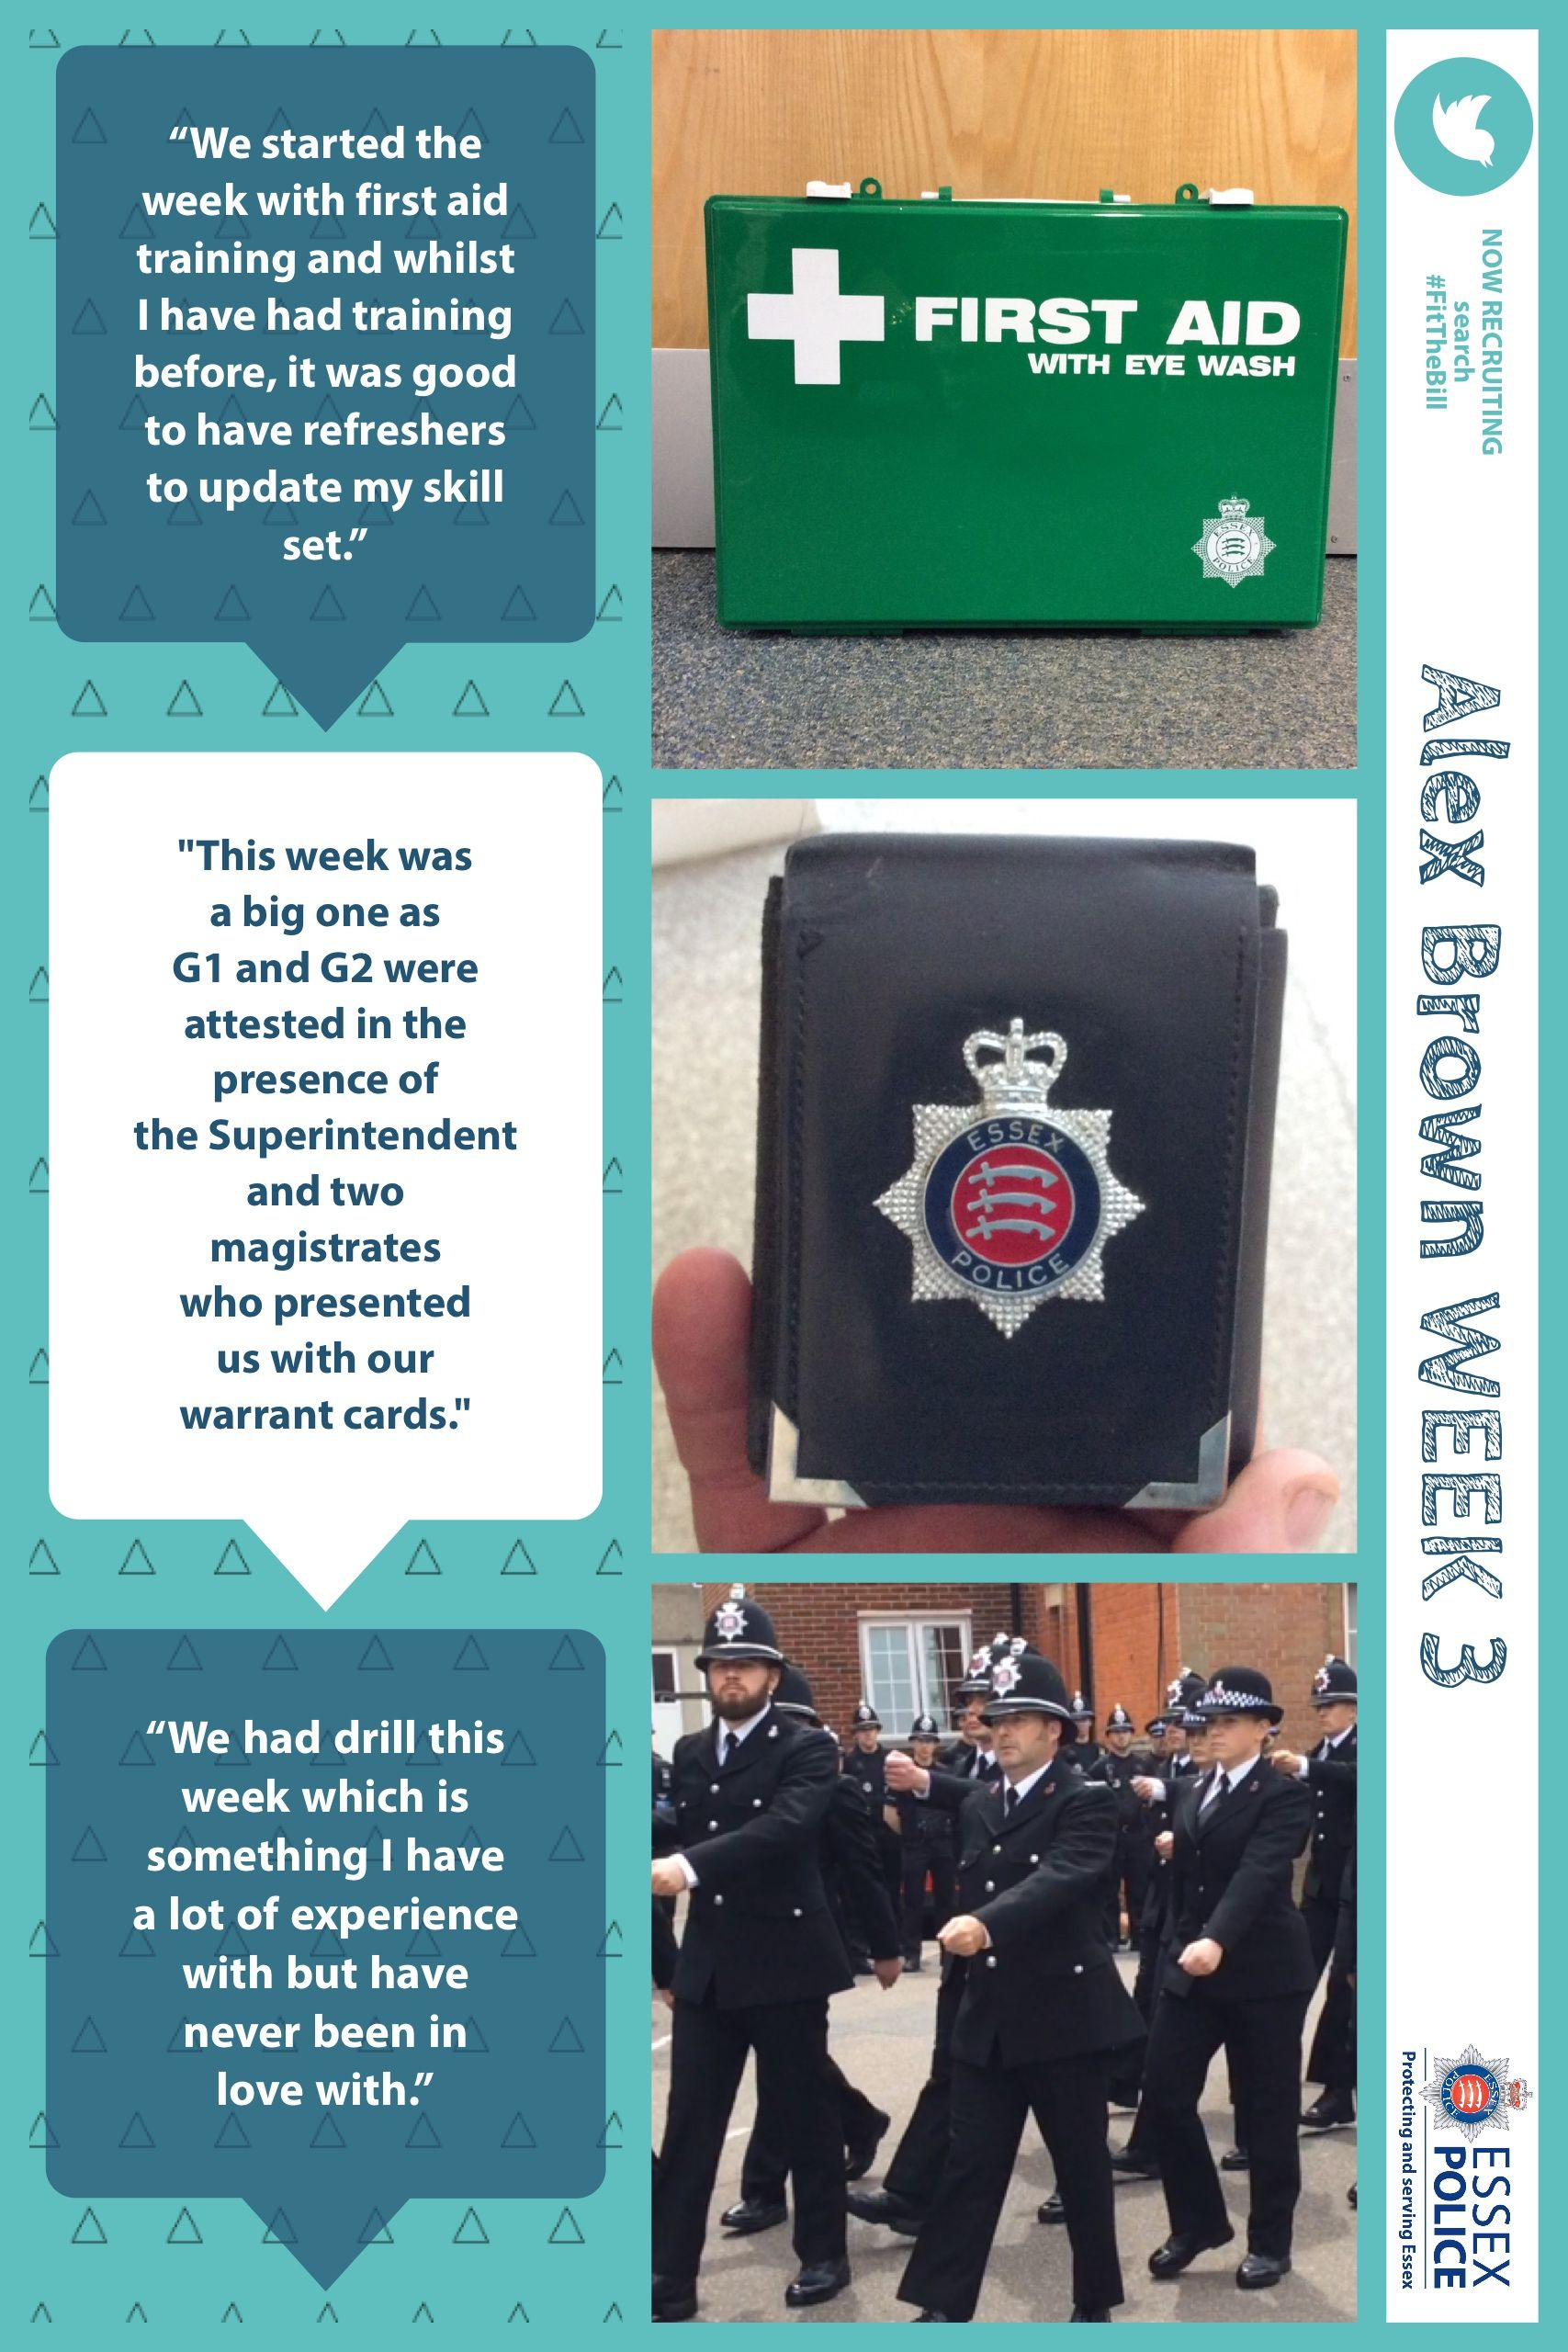 Pc Alex Brown joined us after a career in the military. He will be blogging about his training with Essex Police over the course of his 18 weeks with the Essex Police College.